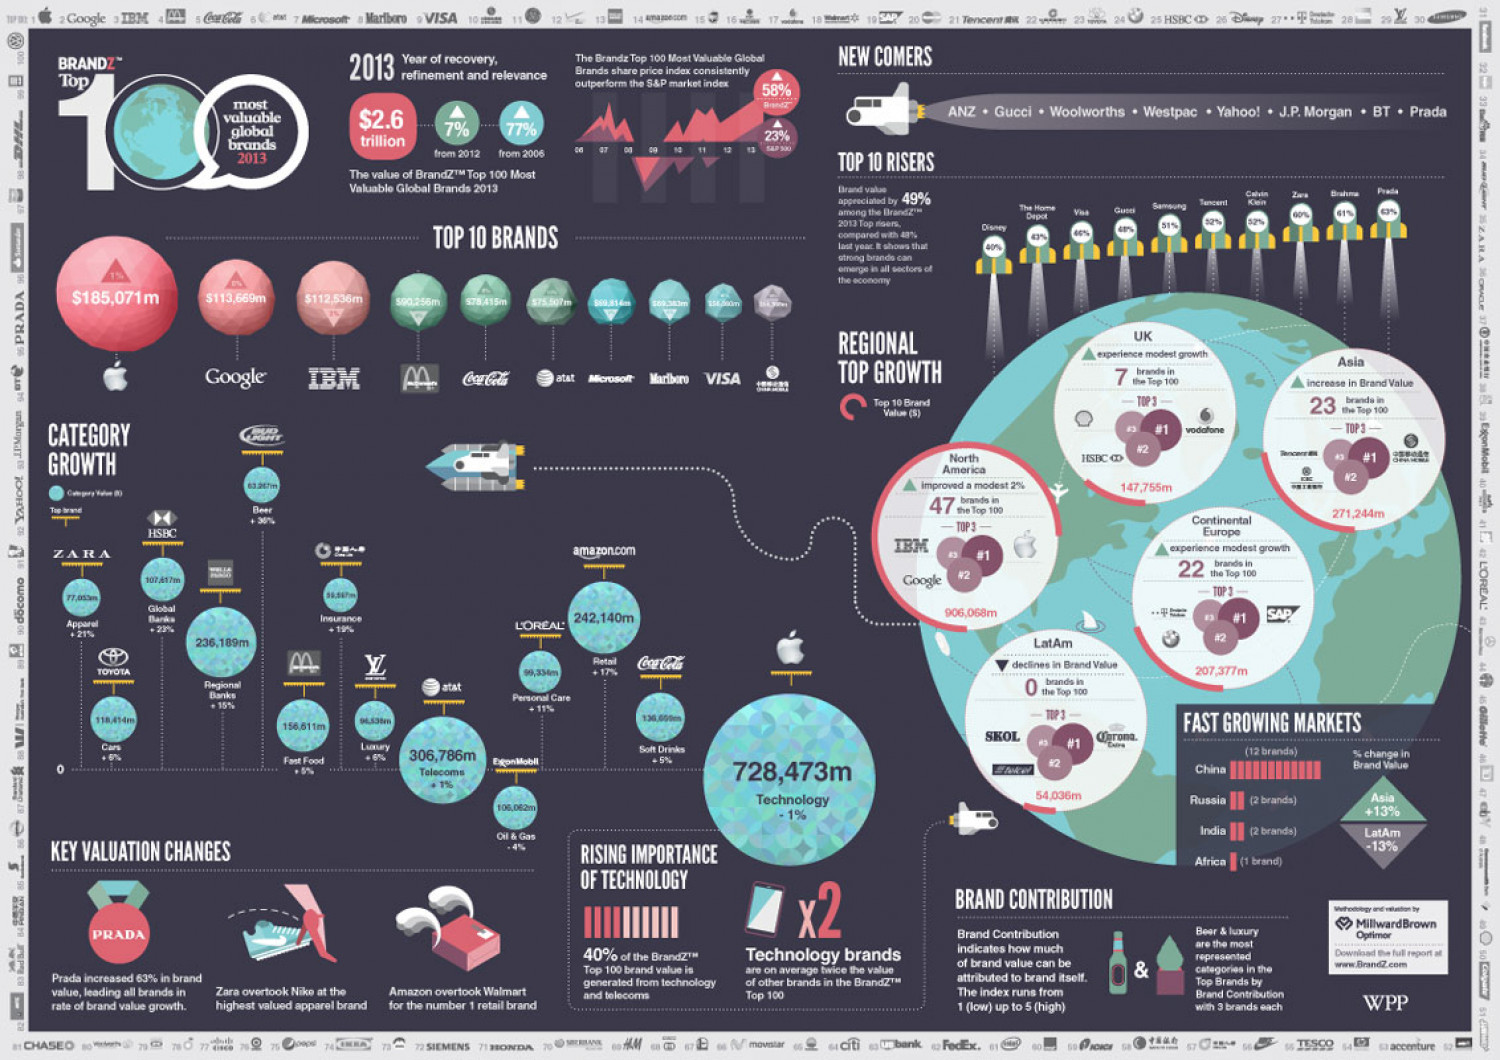 BrandZ Top 100 most valuable brands of 2013 Infographic